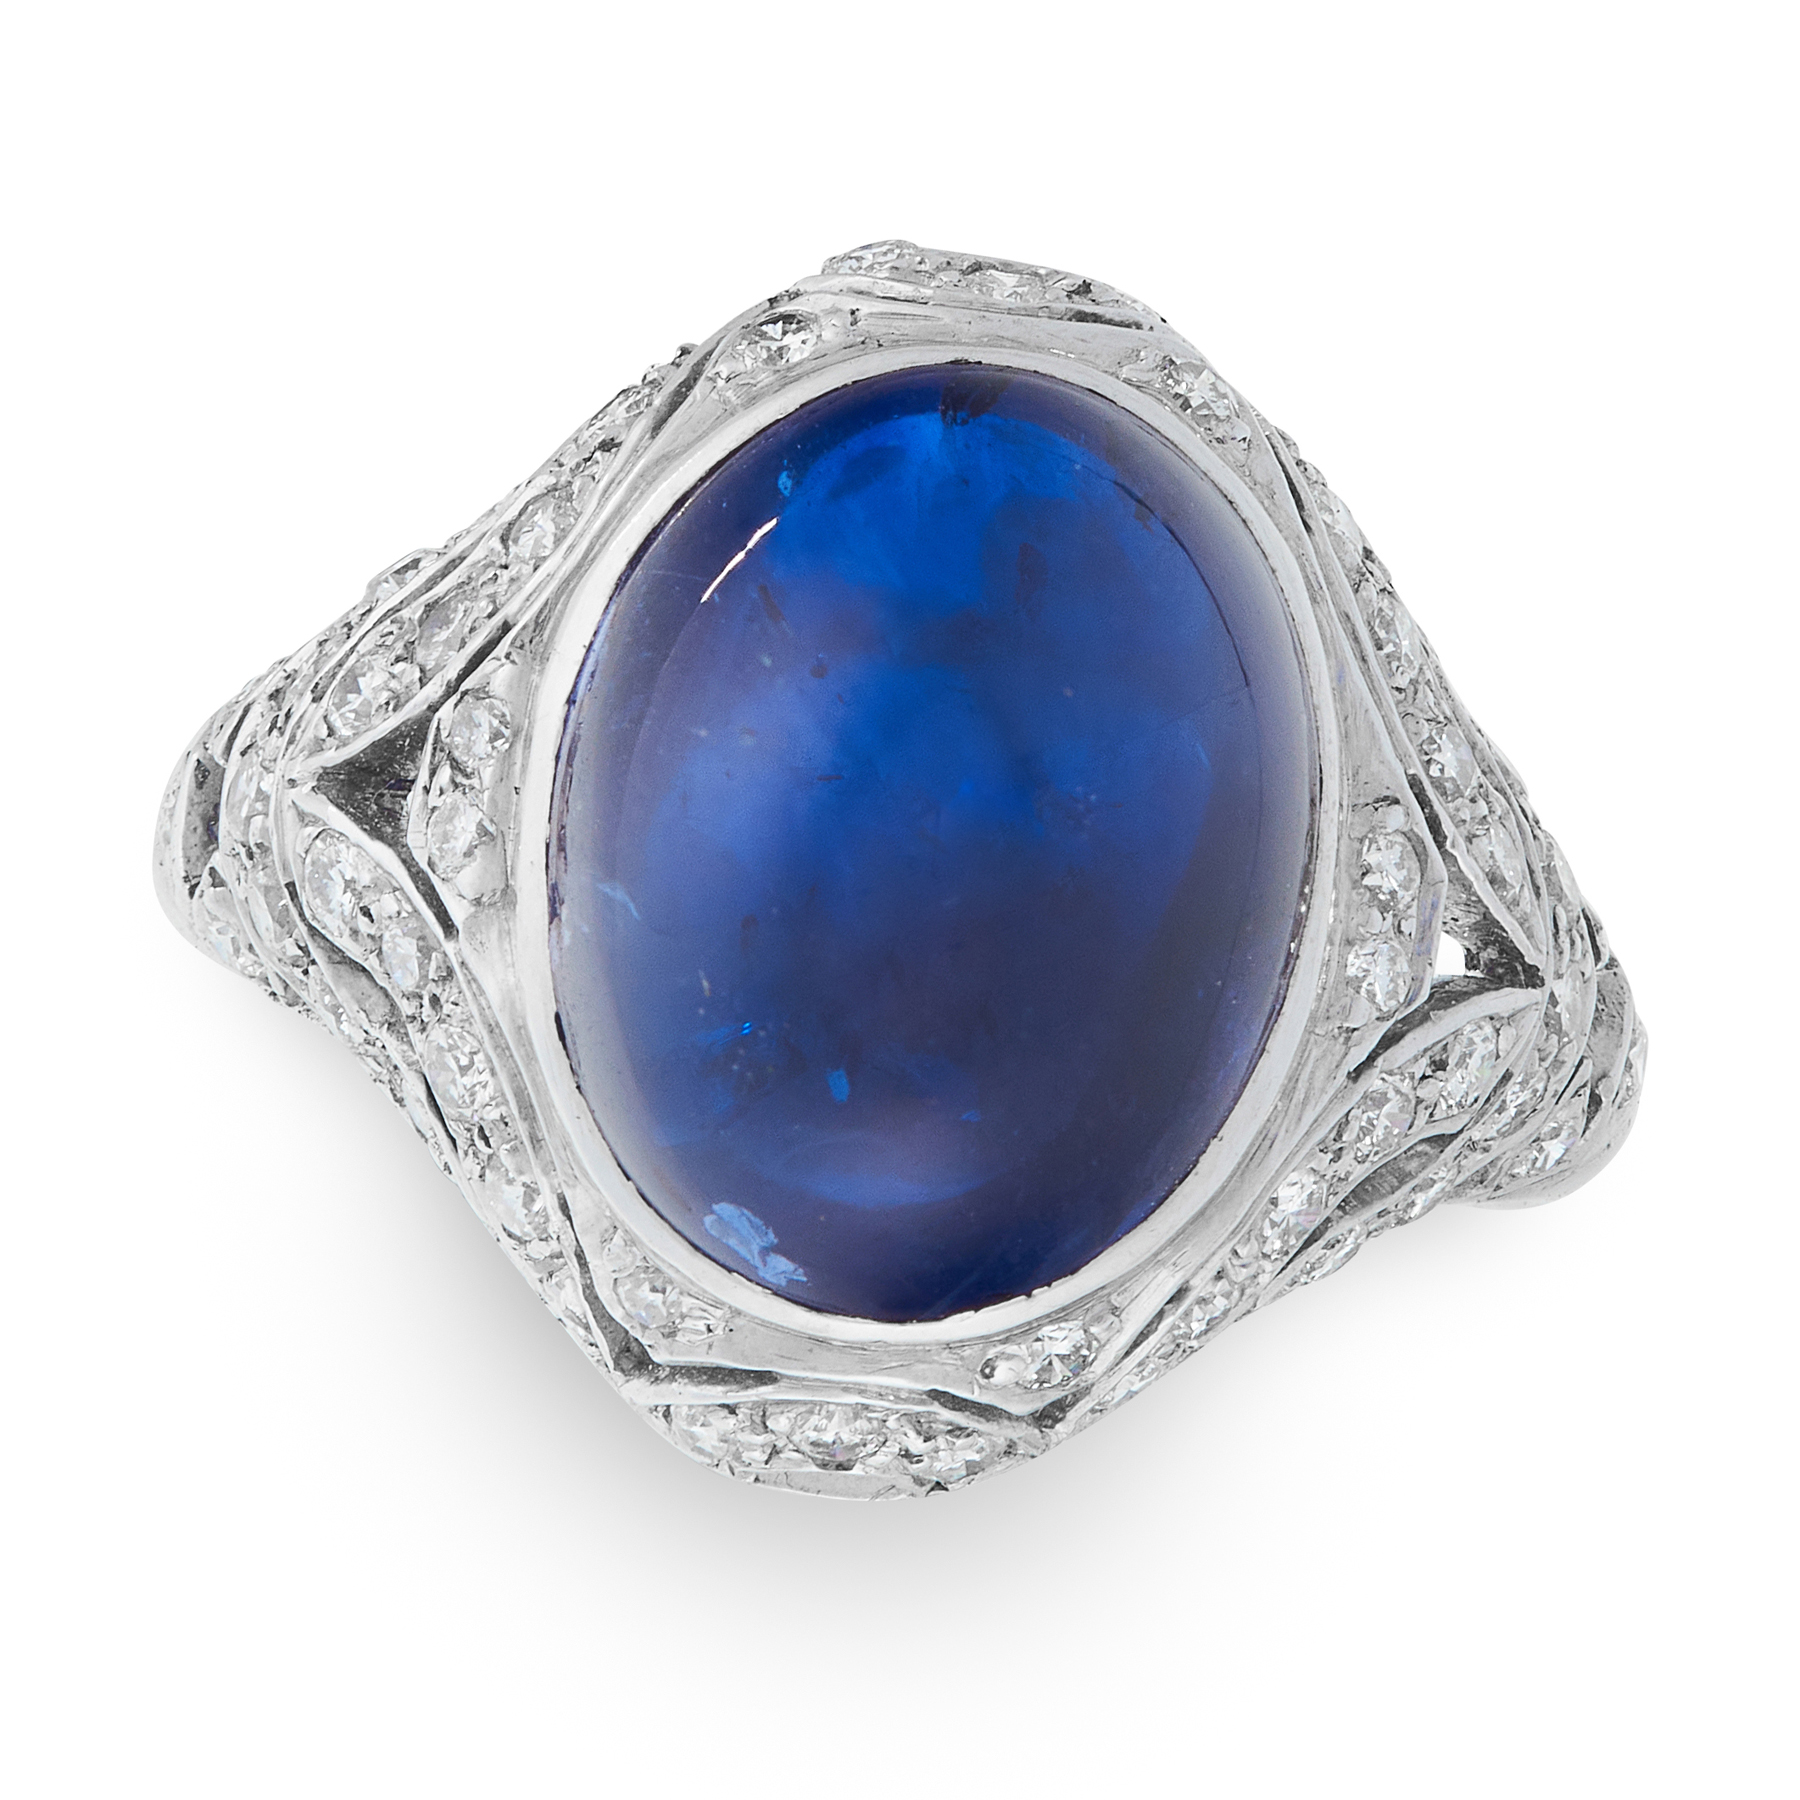 A SAPPHIRE AND DIAMOND RING in 18ct white gold, set with an oval cabochon sapphire within an open